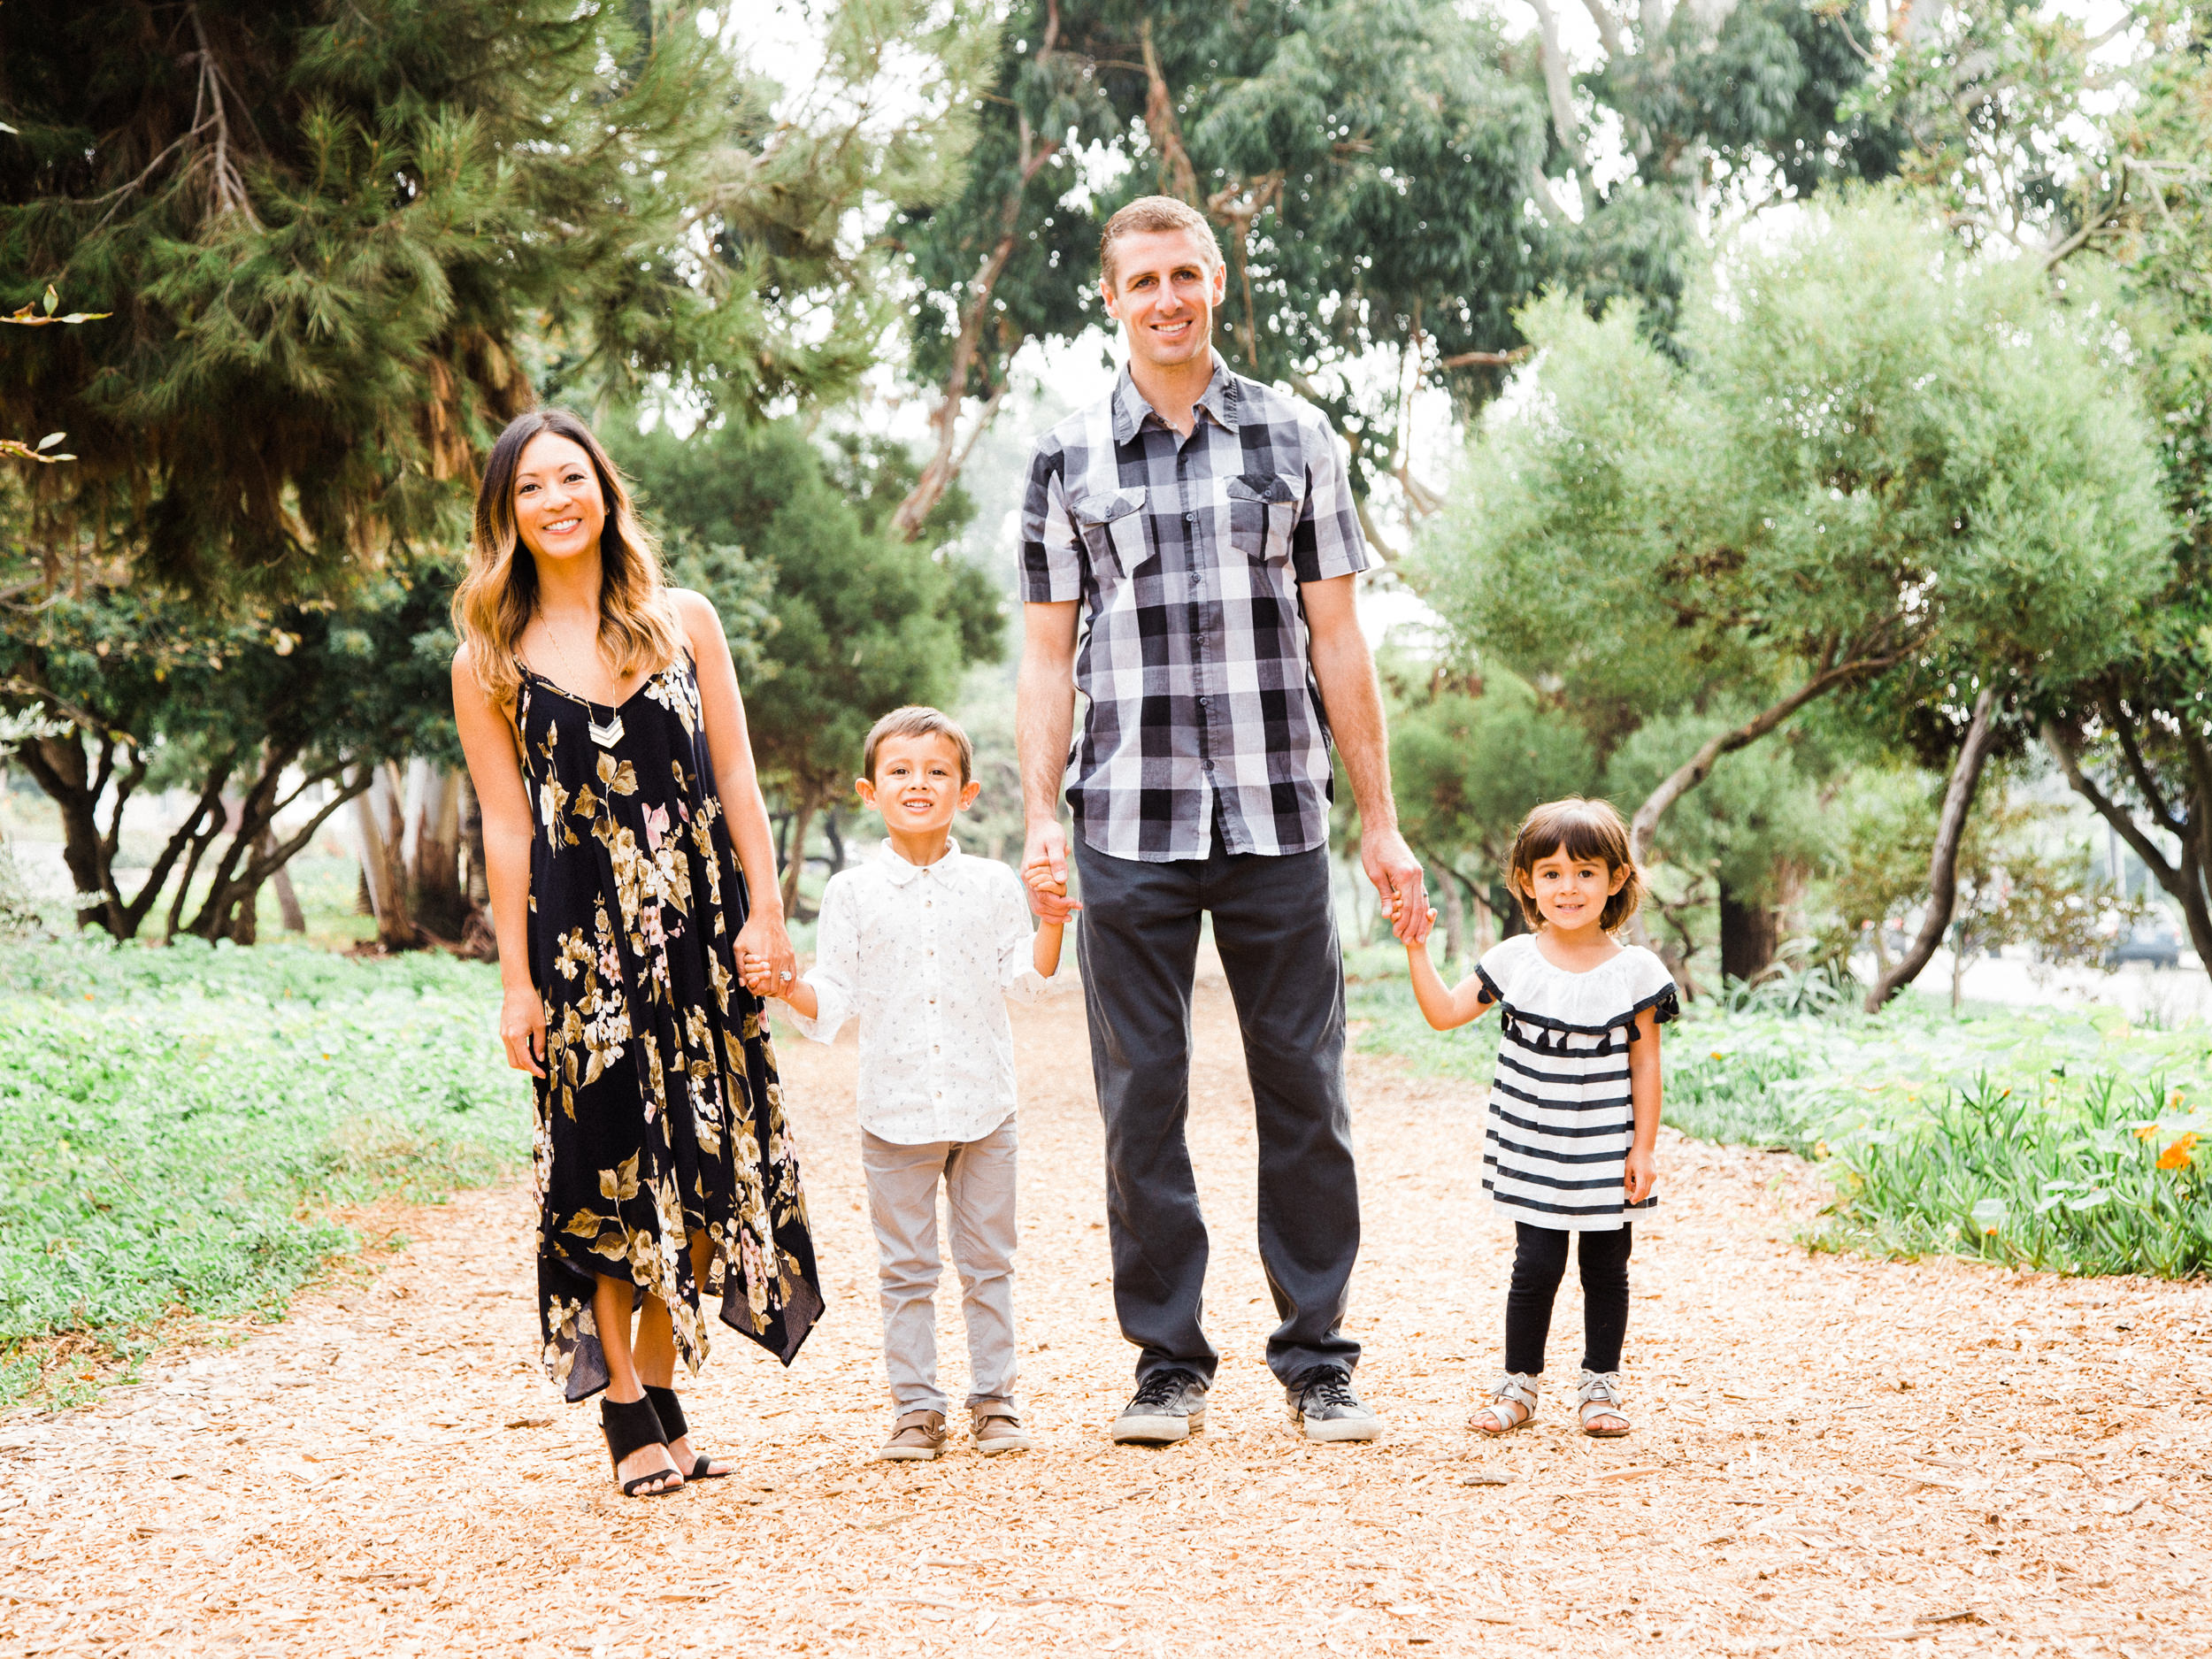 Valley Park Hermosa Beach Valley Park Hermosa Beach Family Portrait Photographs and Valley Park Hermosa Beach Family Portrait Photography from Fine Art Family Portrait Photographer, engagement photographer and Wedding Photographer Daniel Doty Photography.